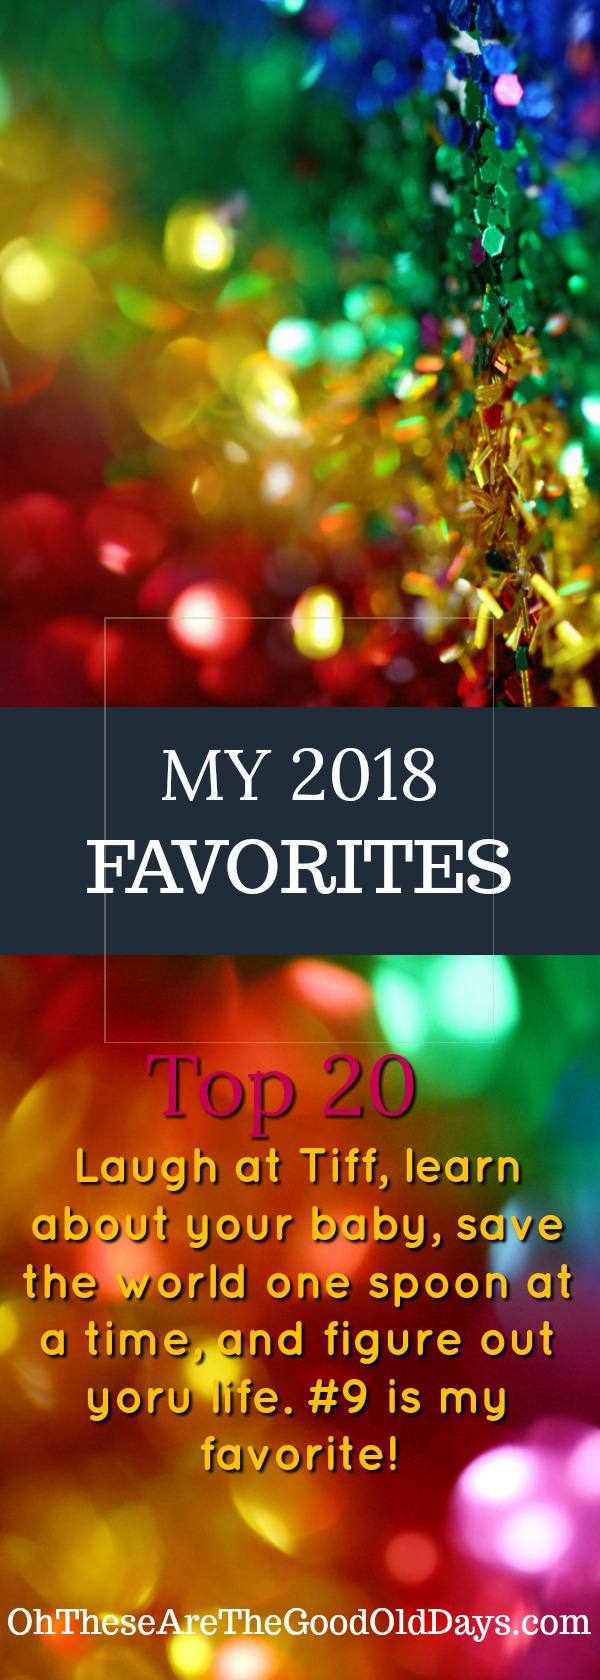 My 2018 Favorites